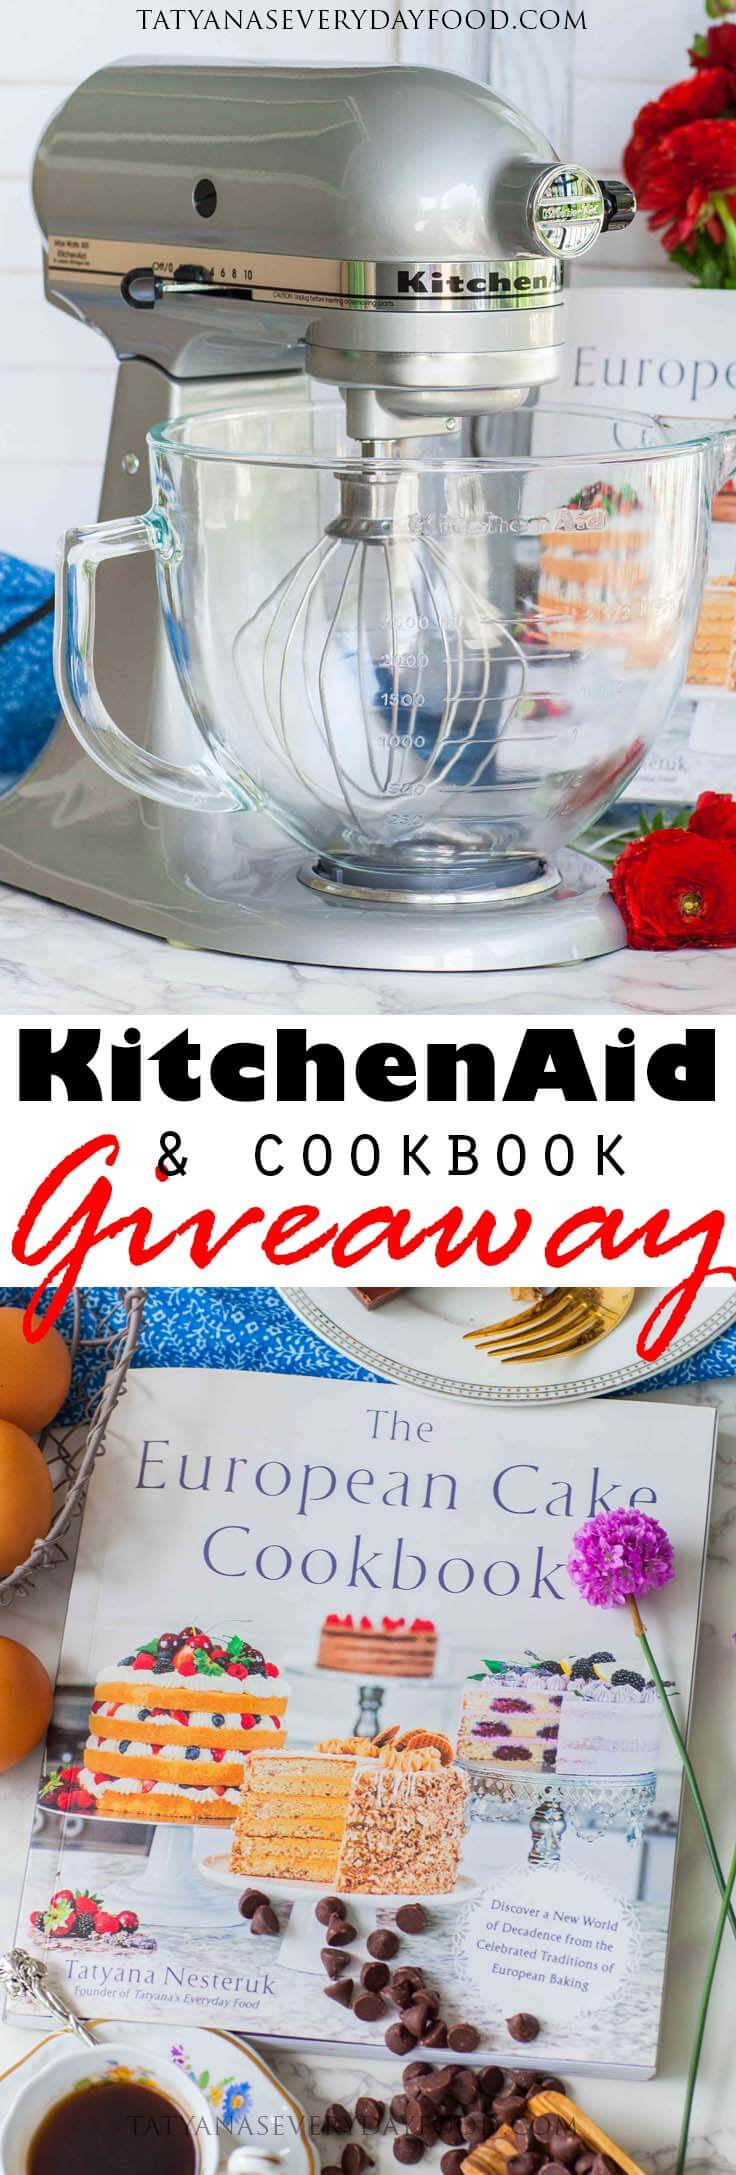 Kitchenaid mixer giveaway signed cookbook closed tatyanas want a sneak peak of the recipes in my book check out my french buttercream recipe here httpstatyanaseverydayfoodrecipe itemsfrench buttercream forumfinder Gallery